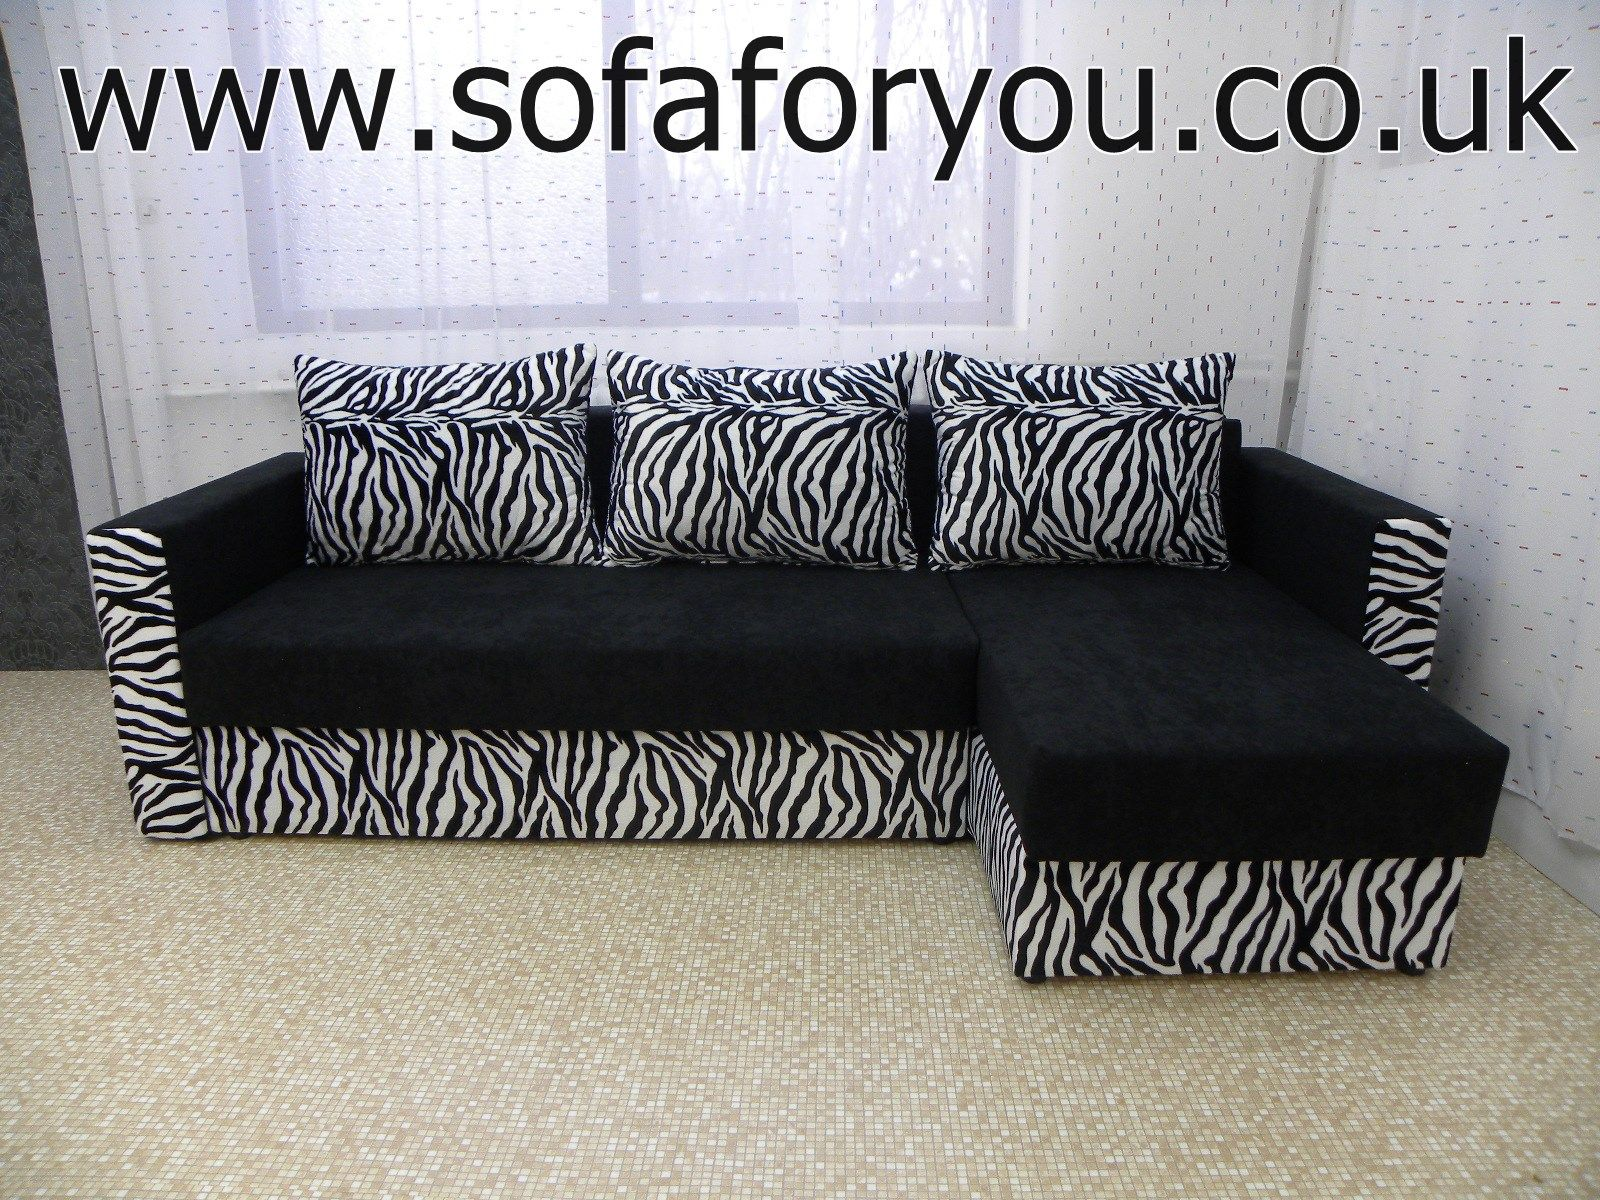 Chaise sofa bed Bristol BLACK ZEBRA two bedding storages